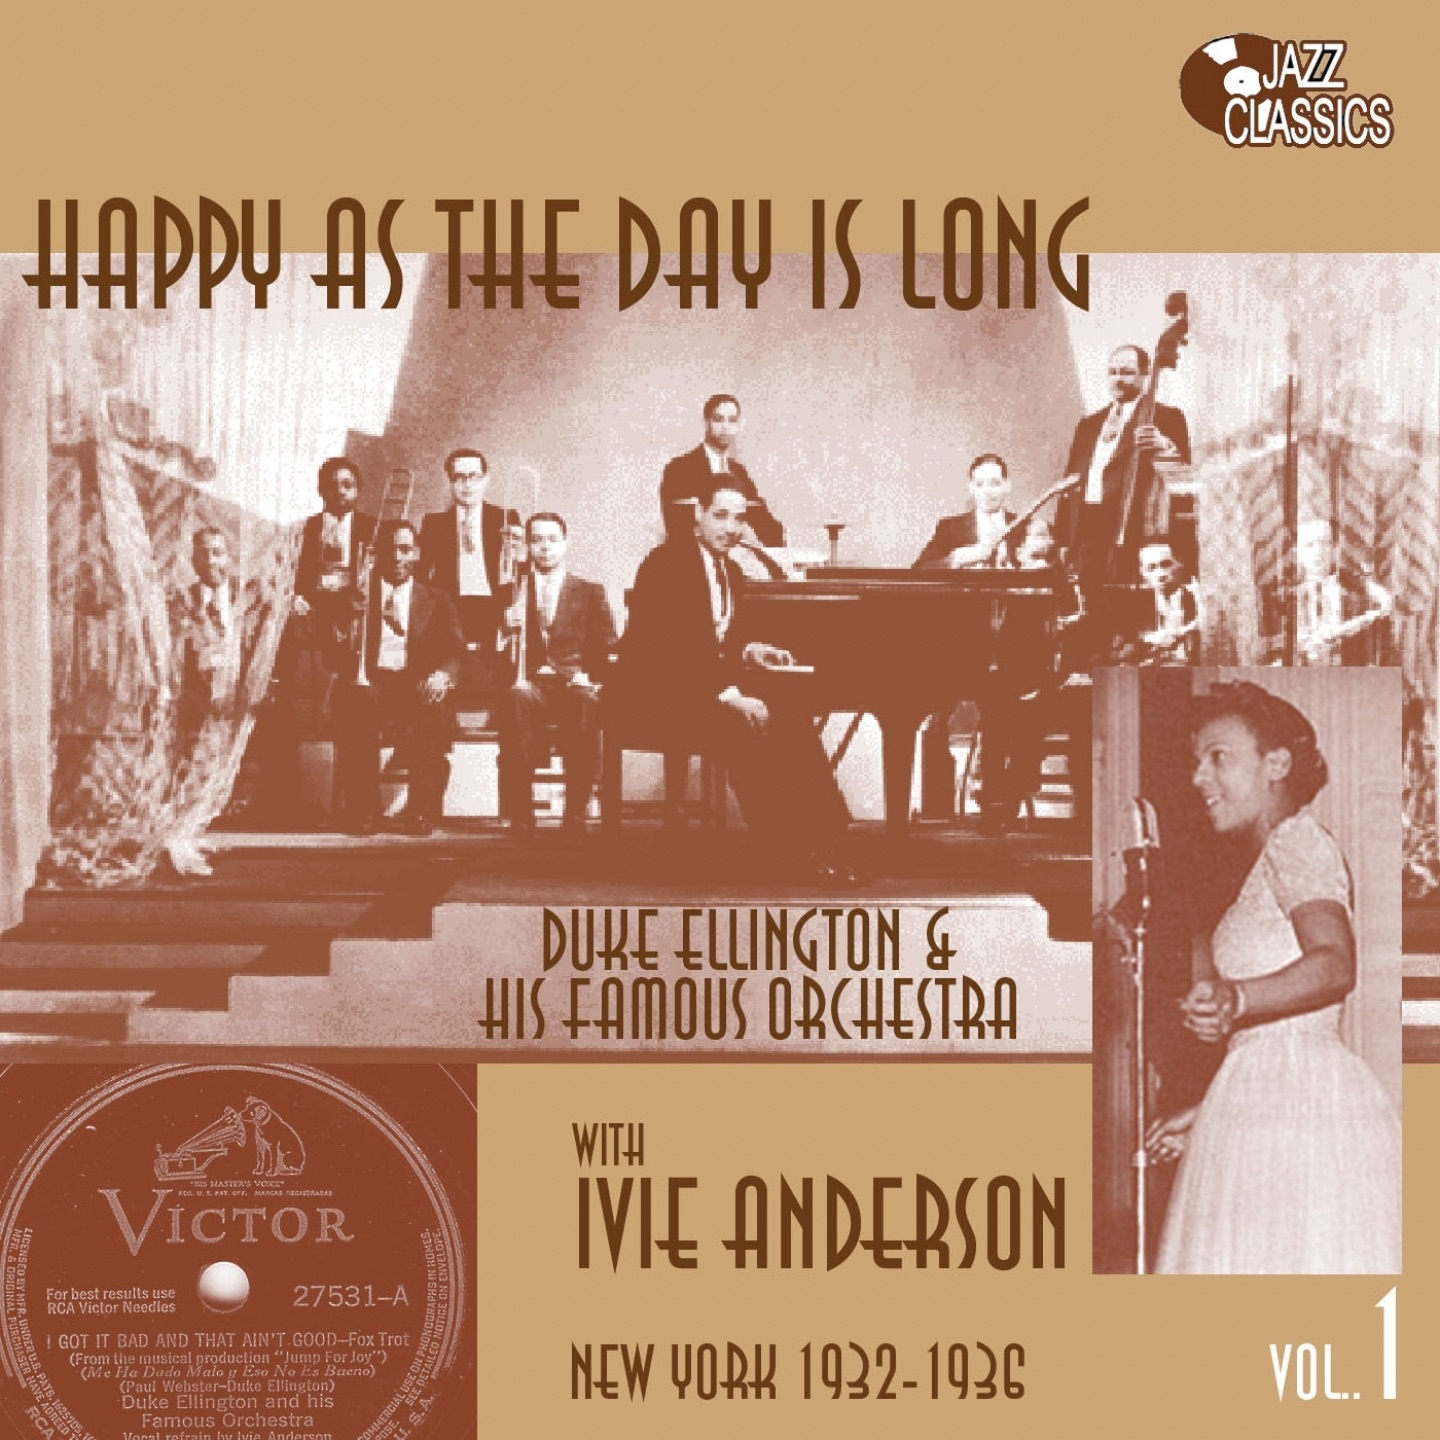 Happy As the Day Is Long (feat. Ivie Anderson) [Duke Ellington & His famous Orchestra, Vol. 1]